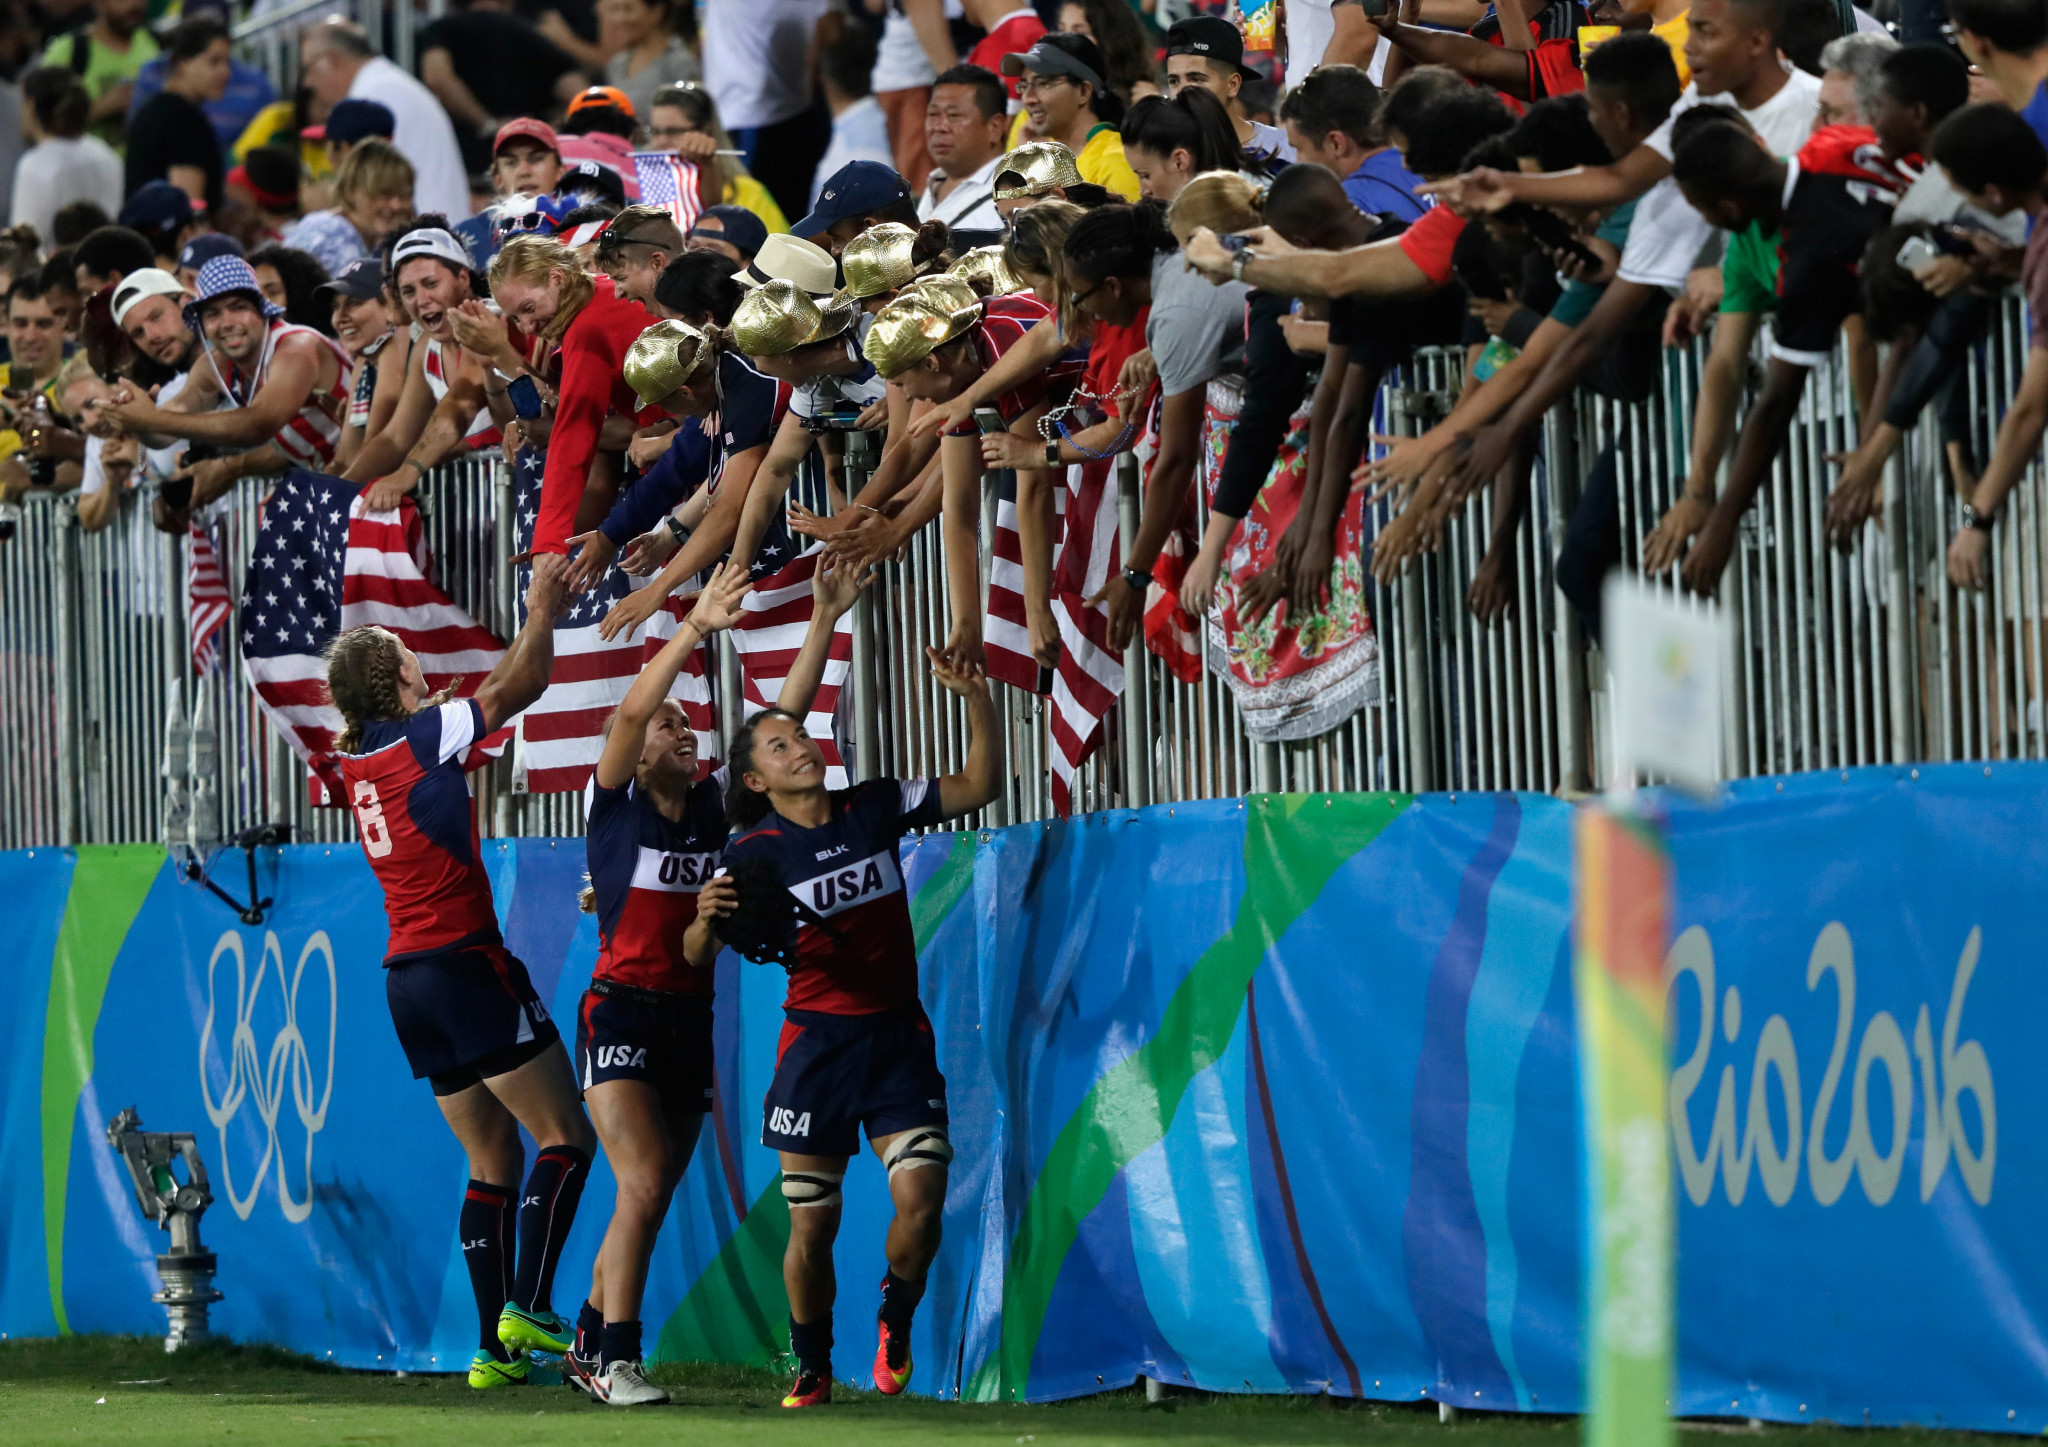 """Sarah Hirshland, chief executive of the USOPC, admitted the decision to ban overseas fans was the news """"we hoped would never come"""" ©Getty Images"""